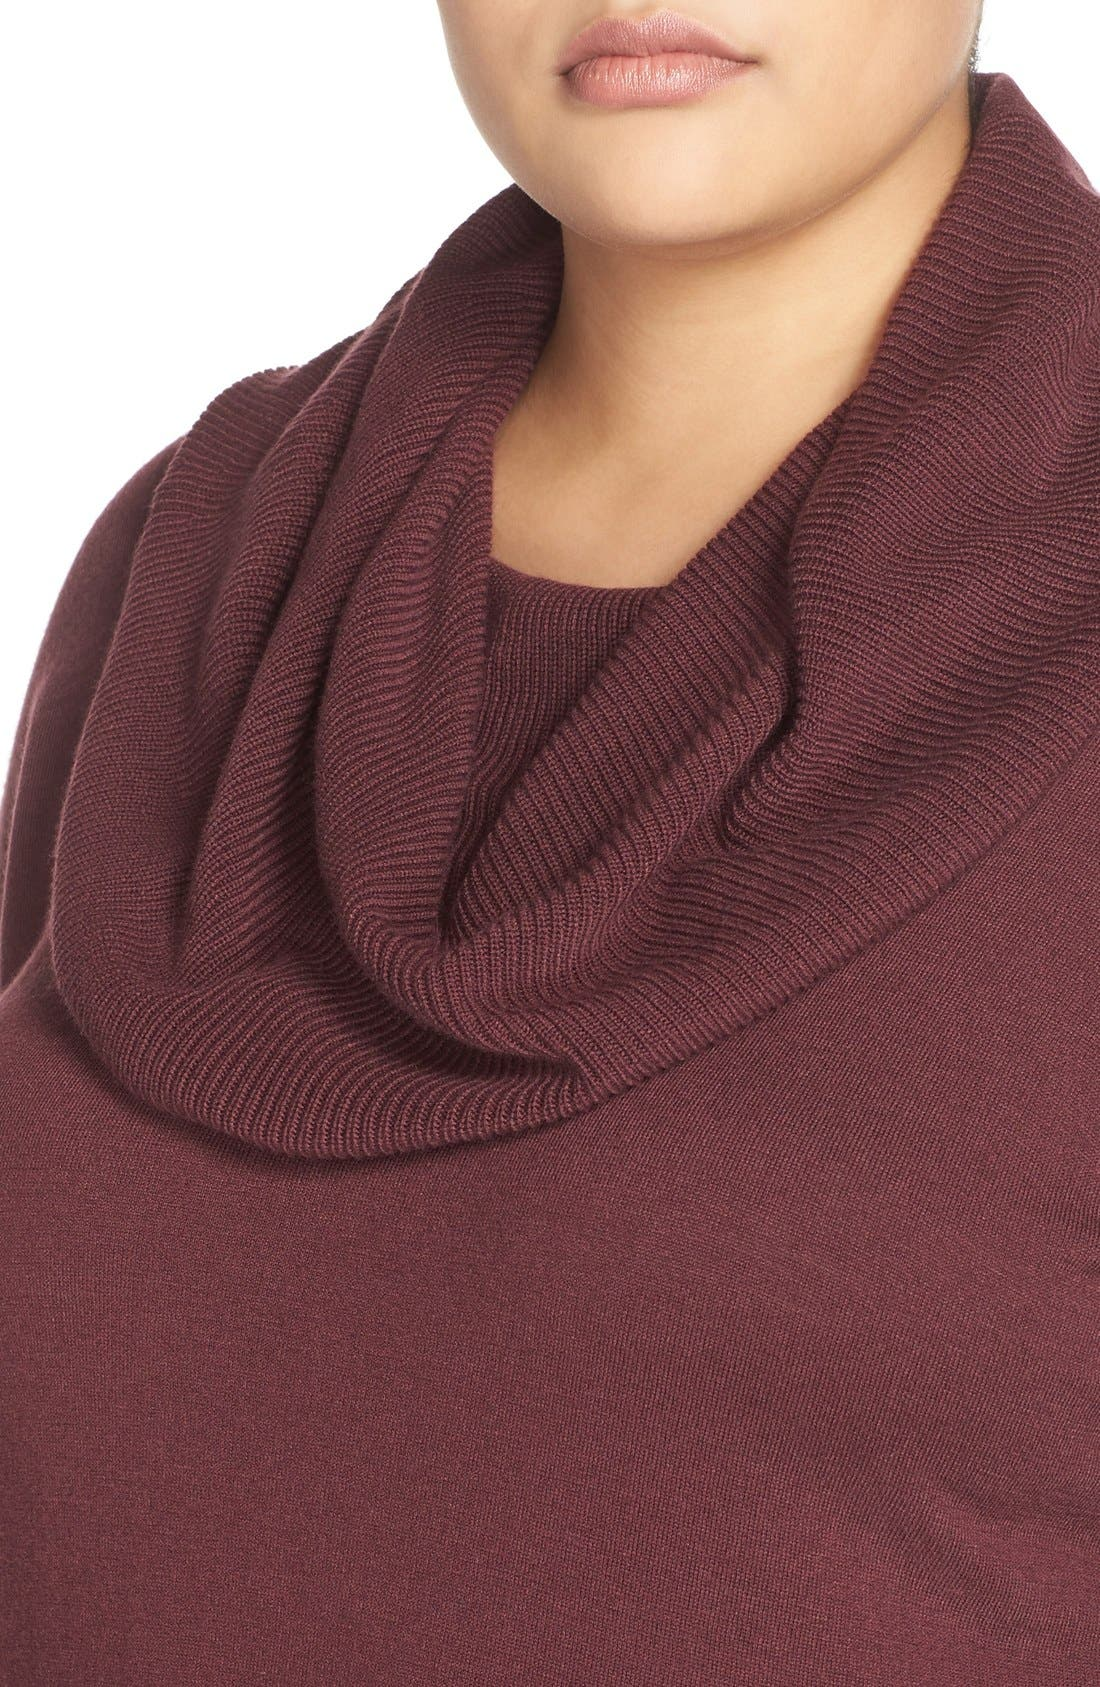 Cowl Neck Tunic Sweater,                             Alternate thumbnail 36, color,